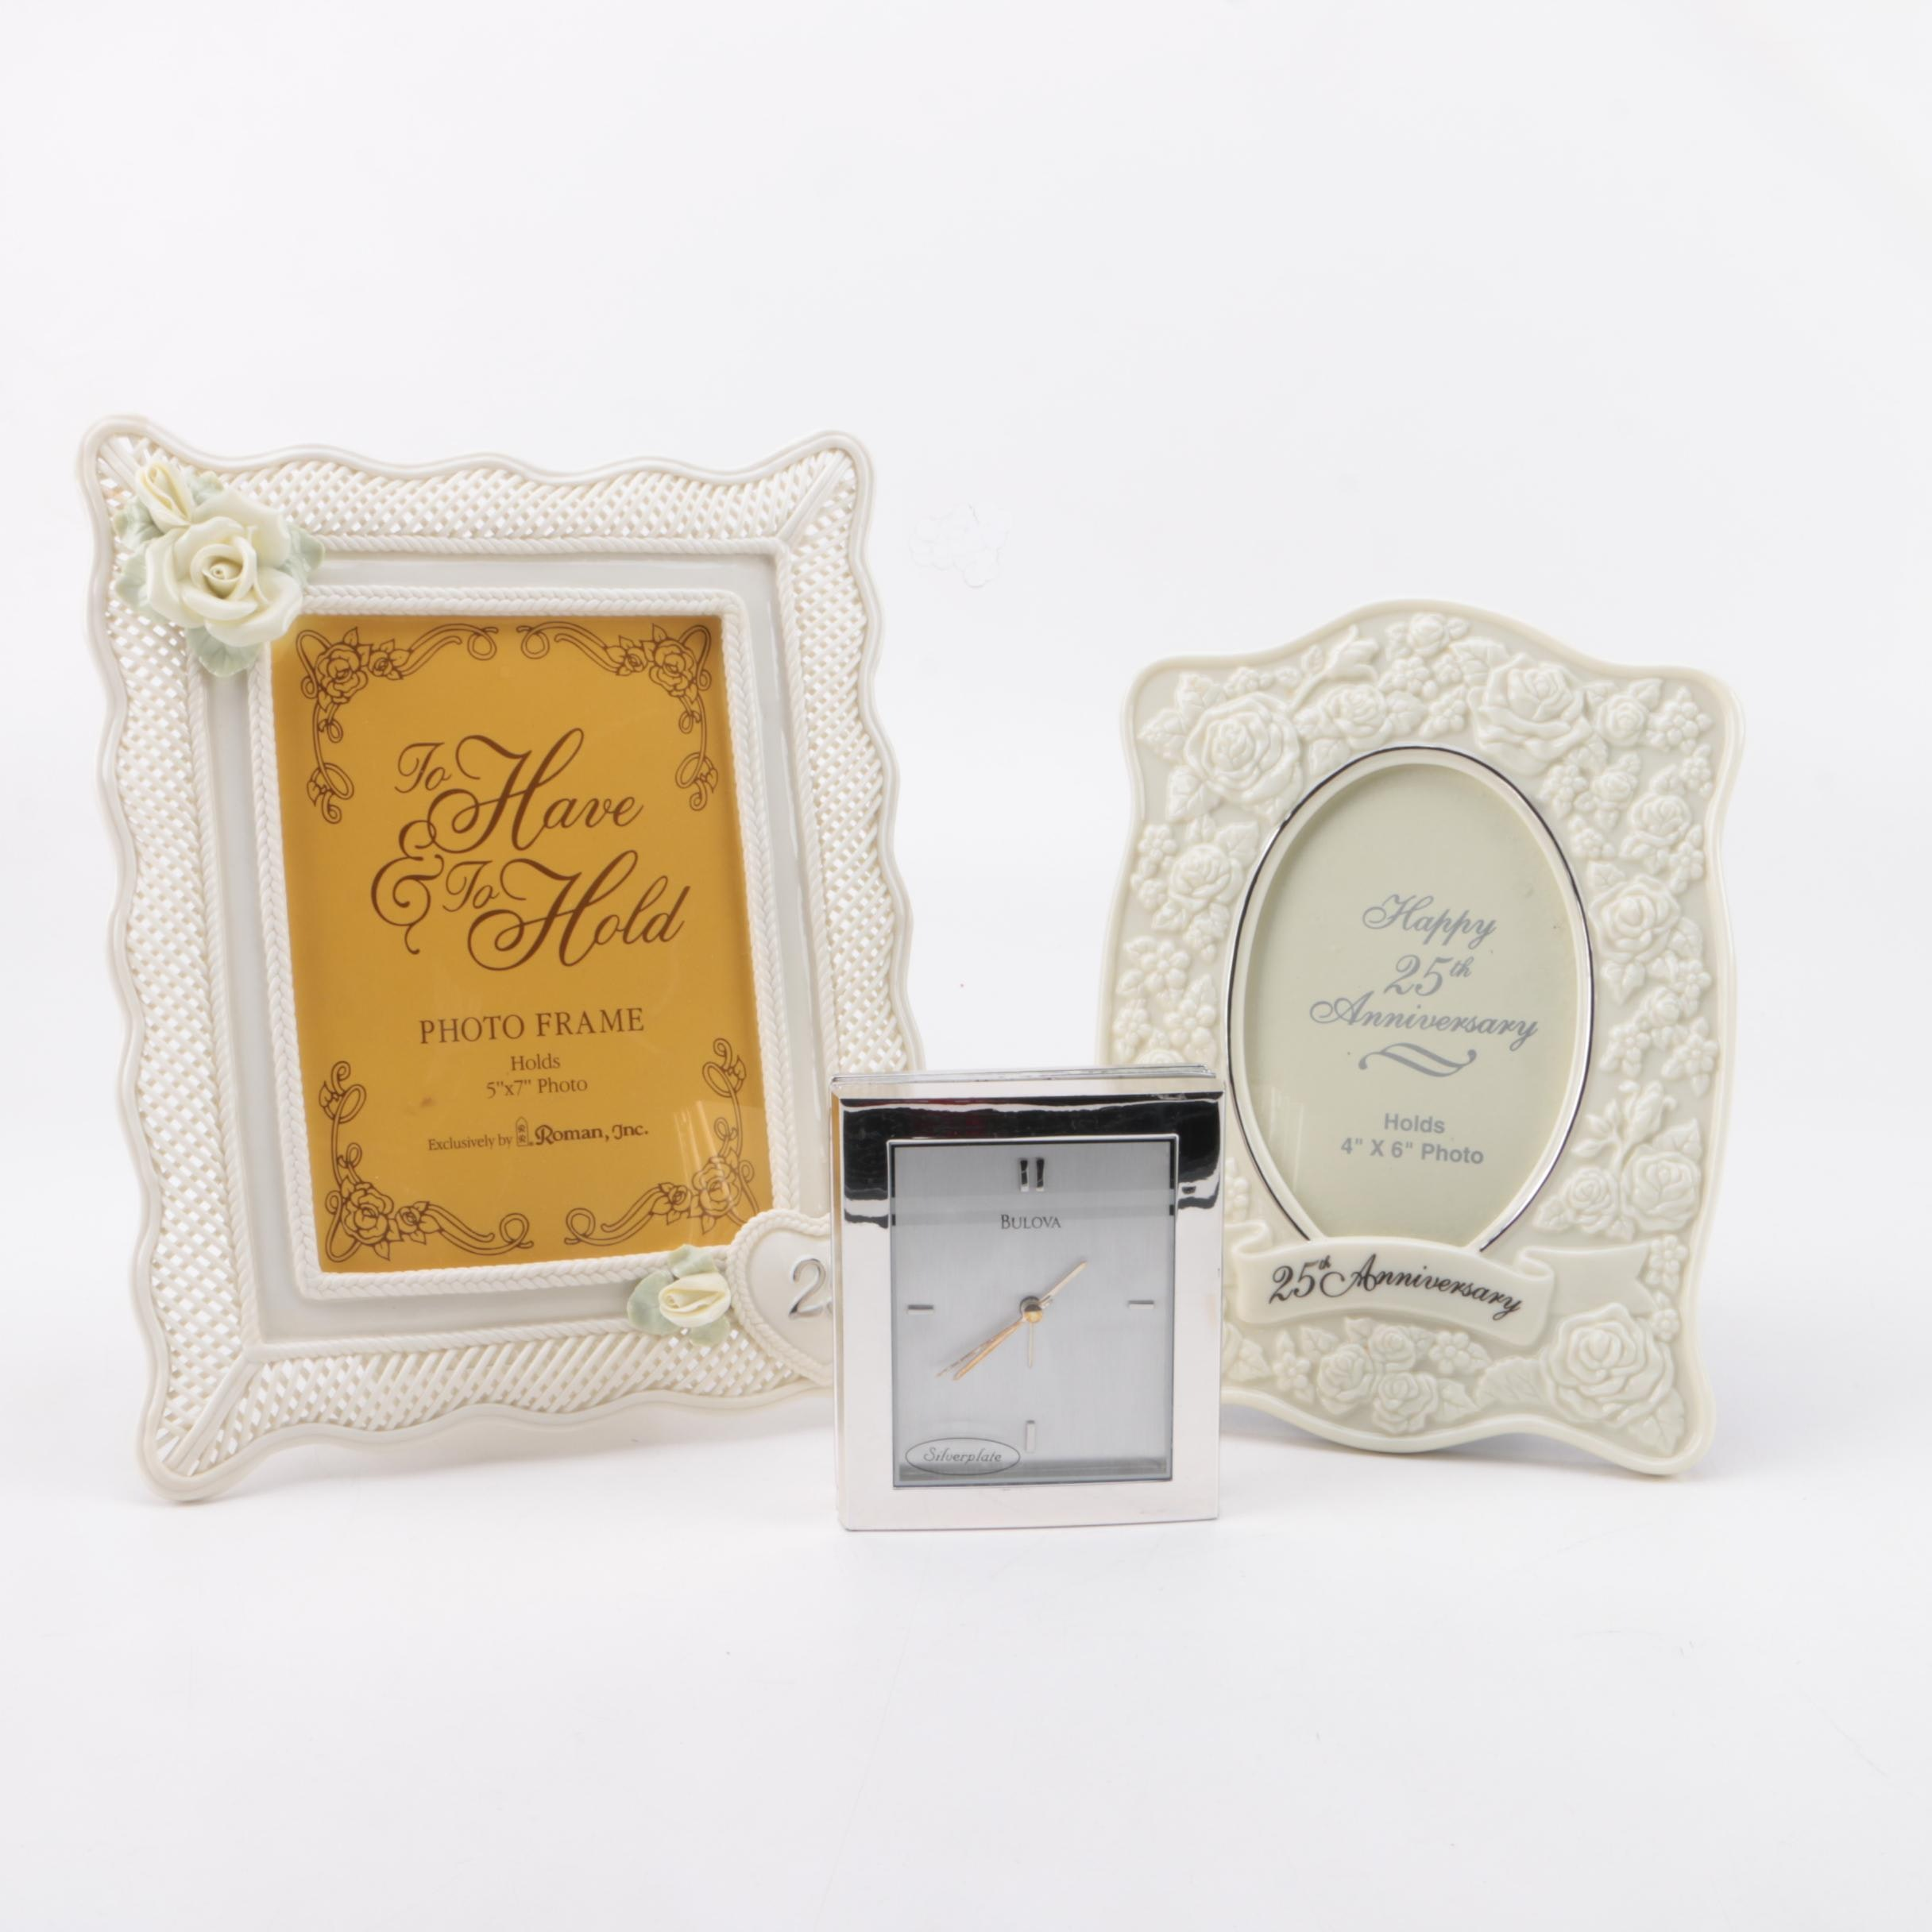 Picture Frames for 25th Anniversaries